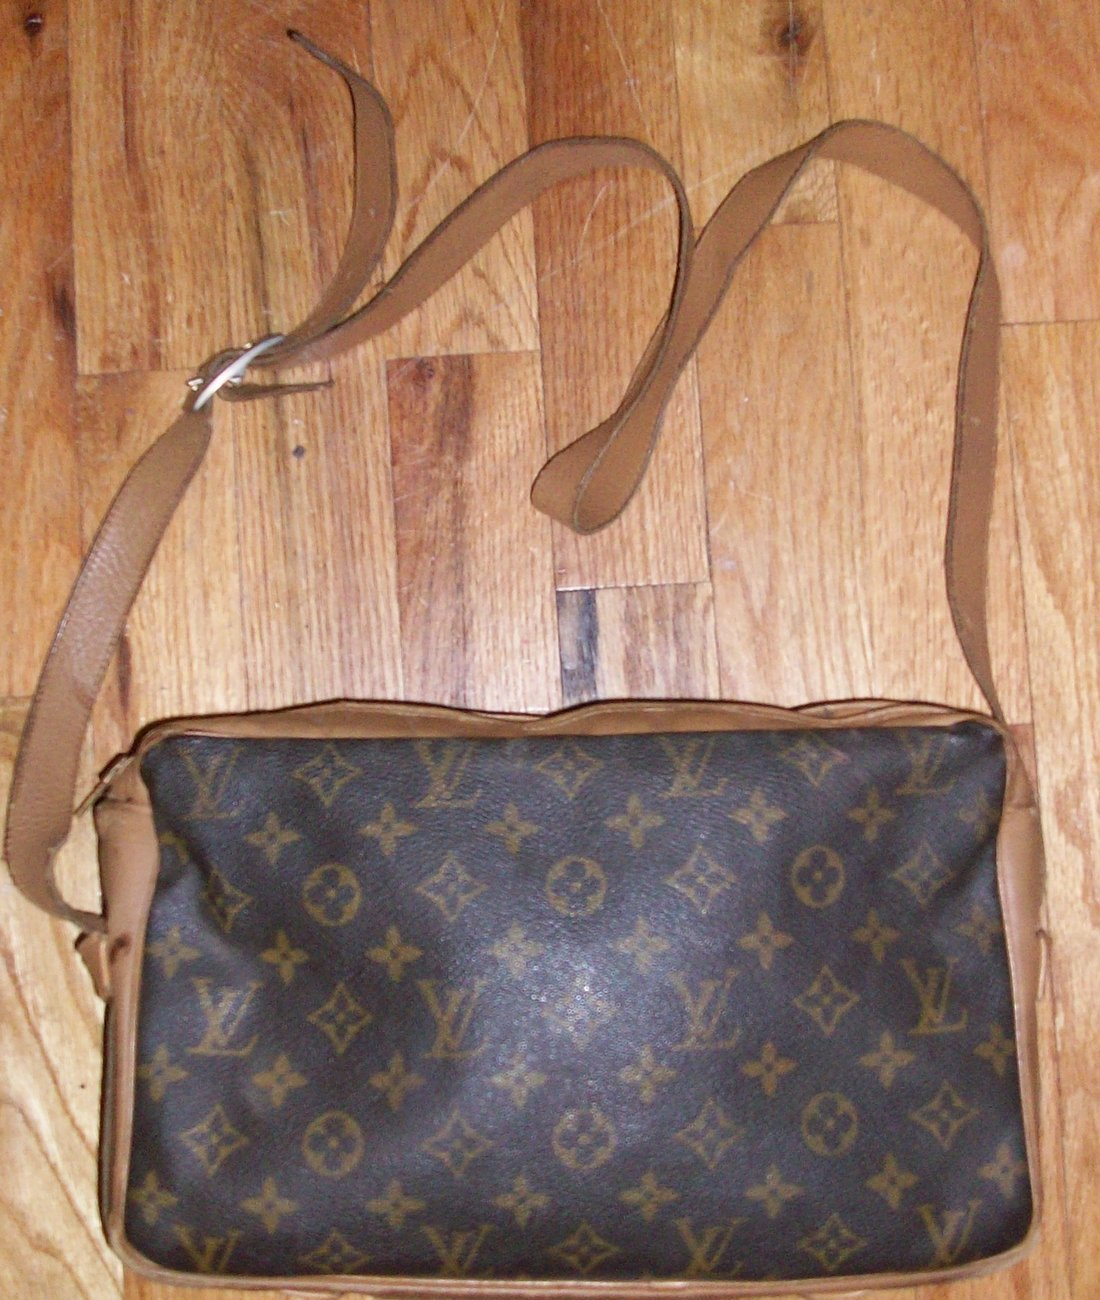 Very Vintage LOUIS VUITTON Trocadero Style Purse Handbag LV